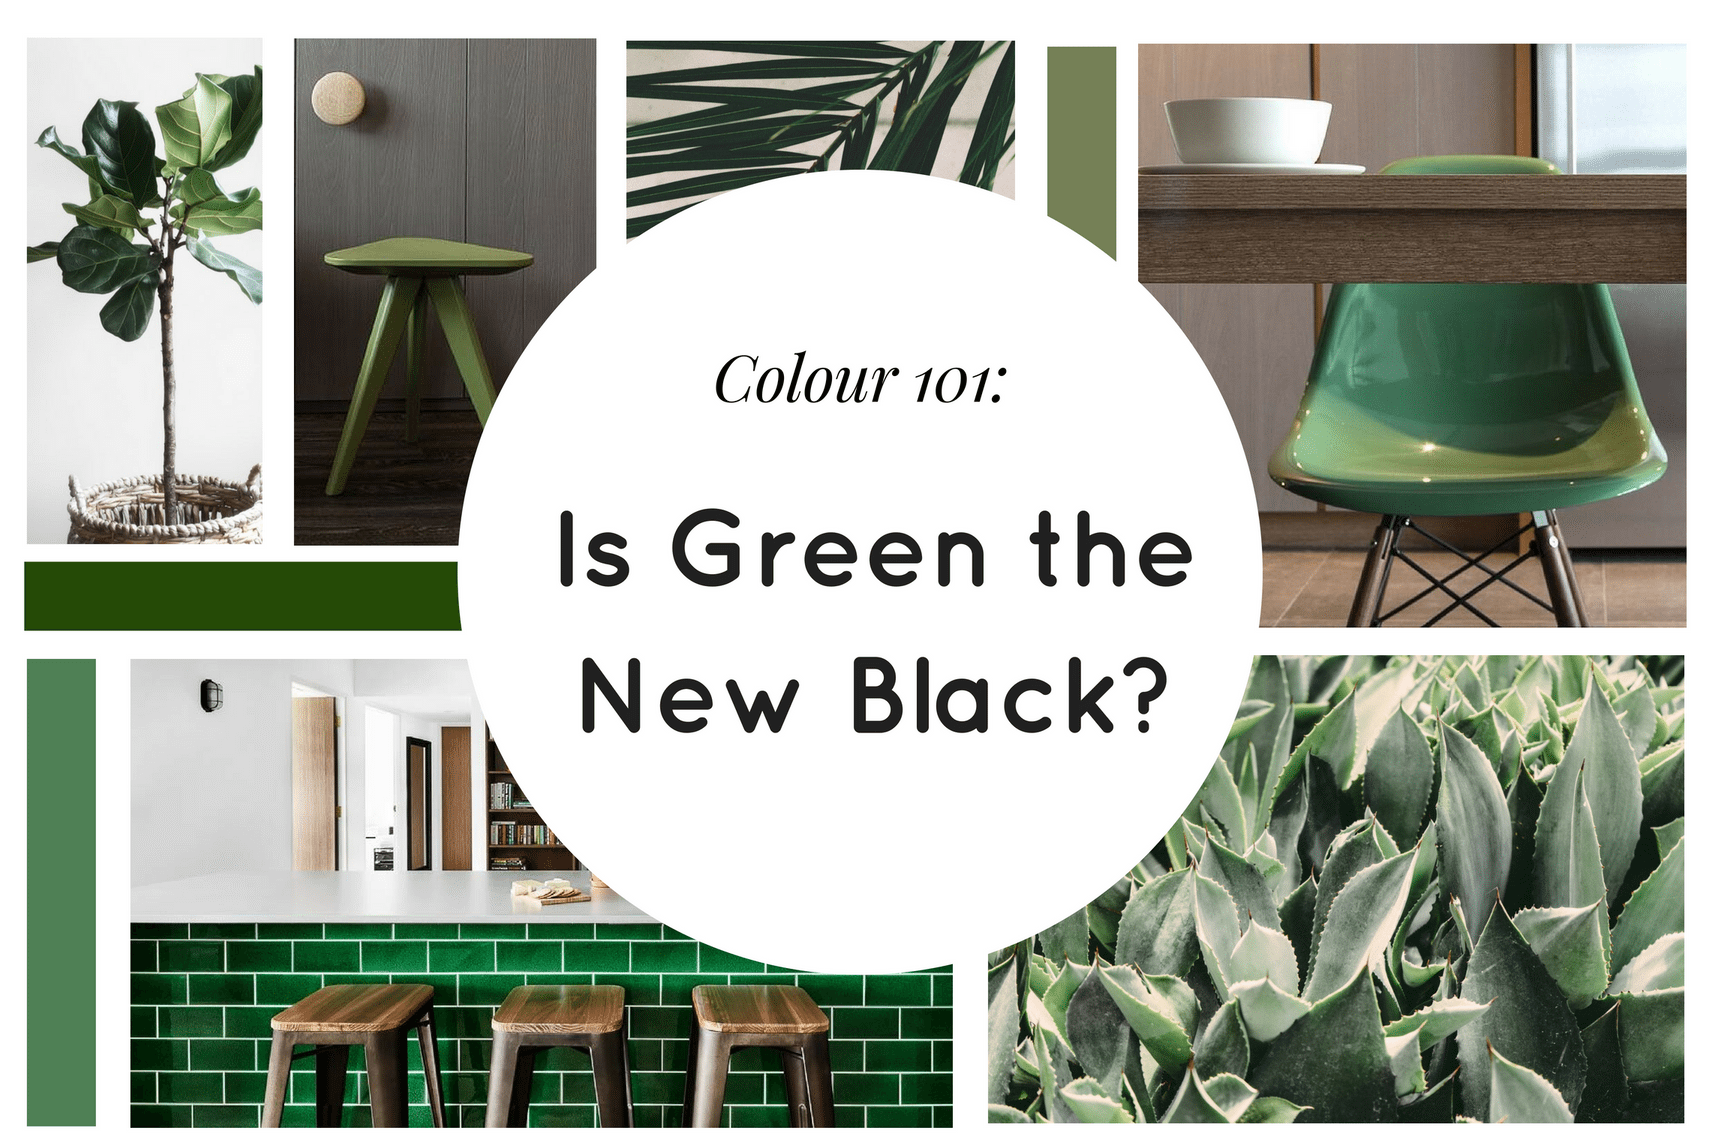 Colour 101: Is Green the New Black?